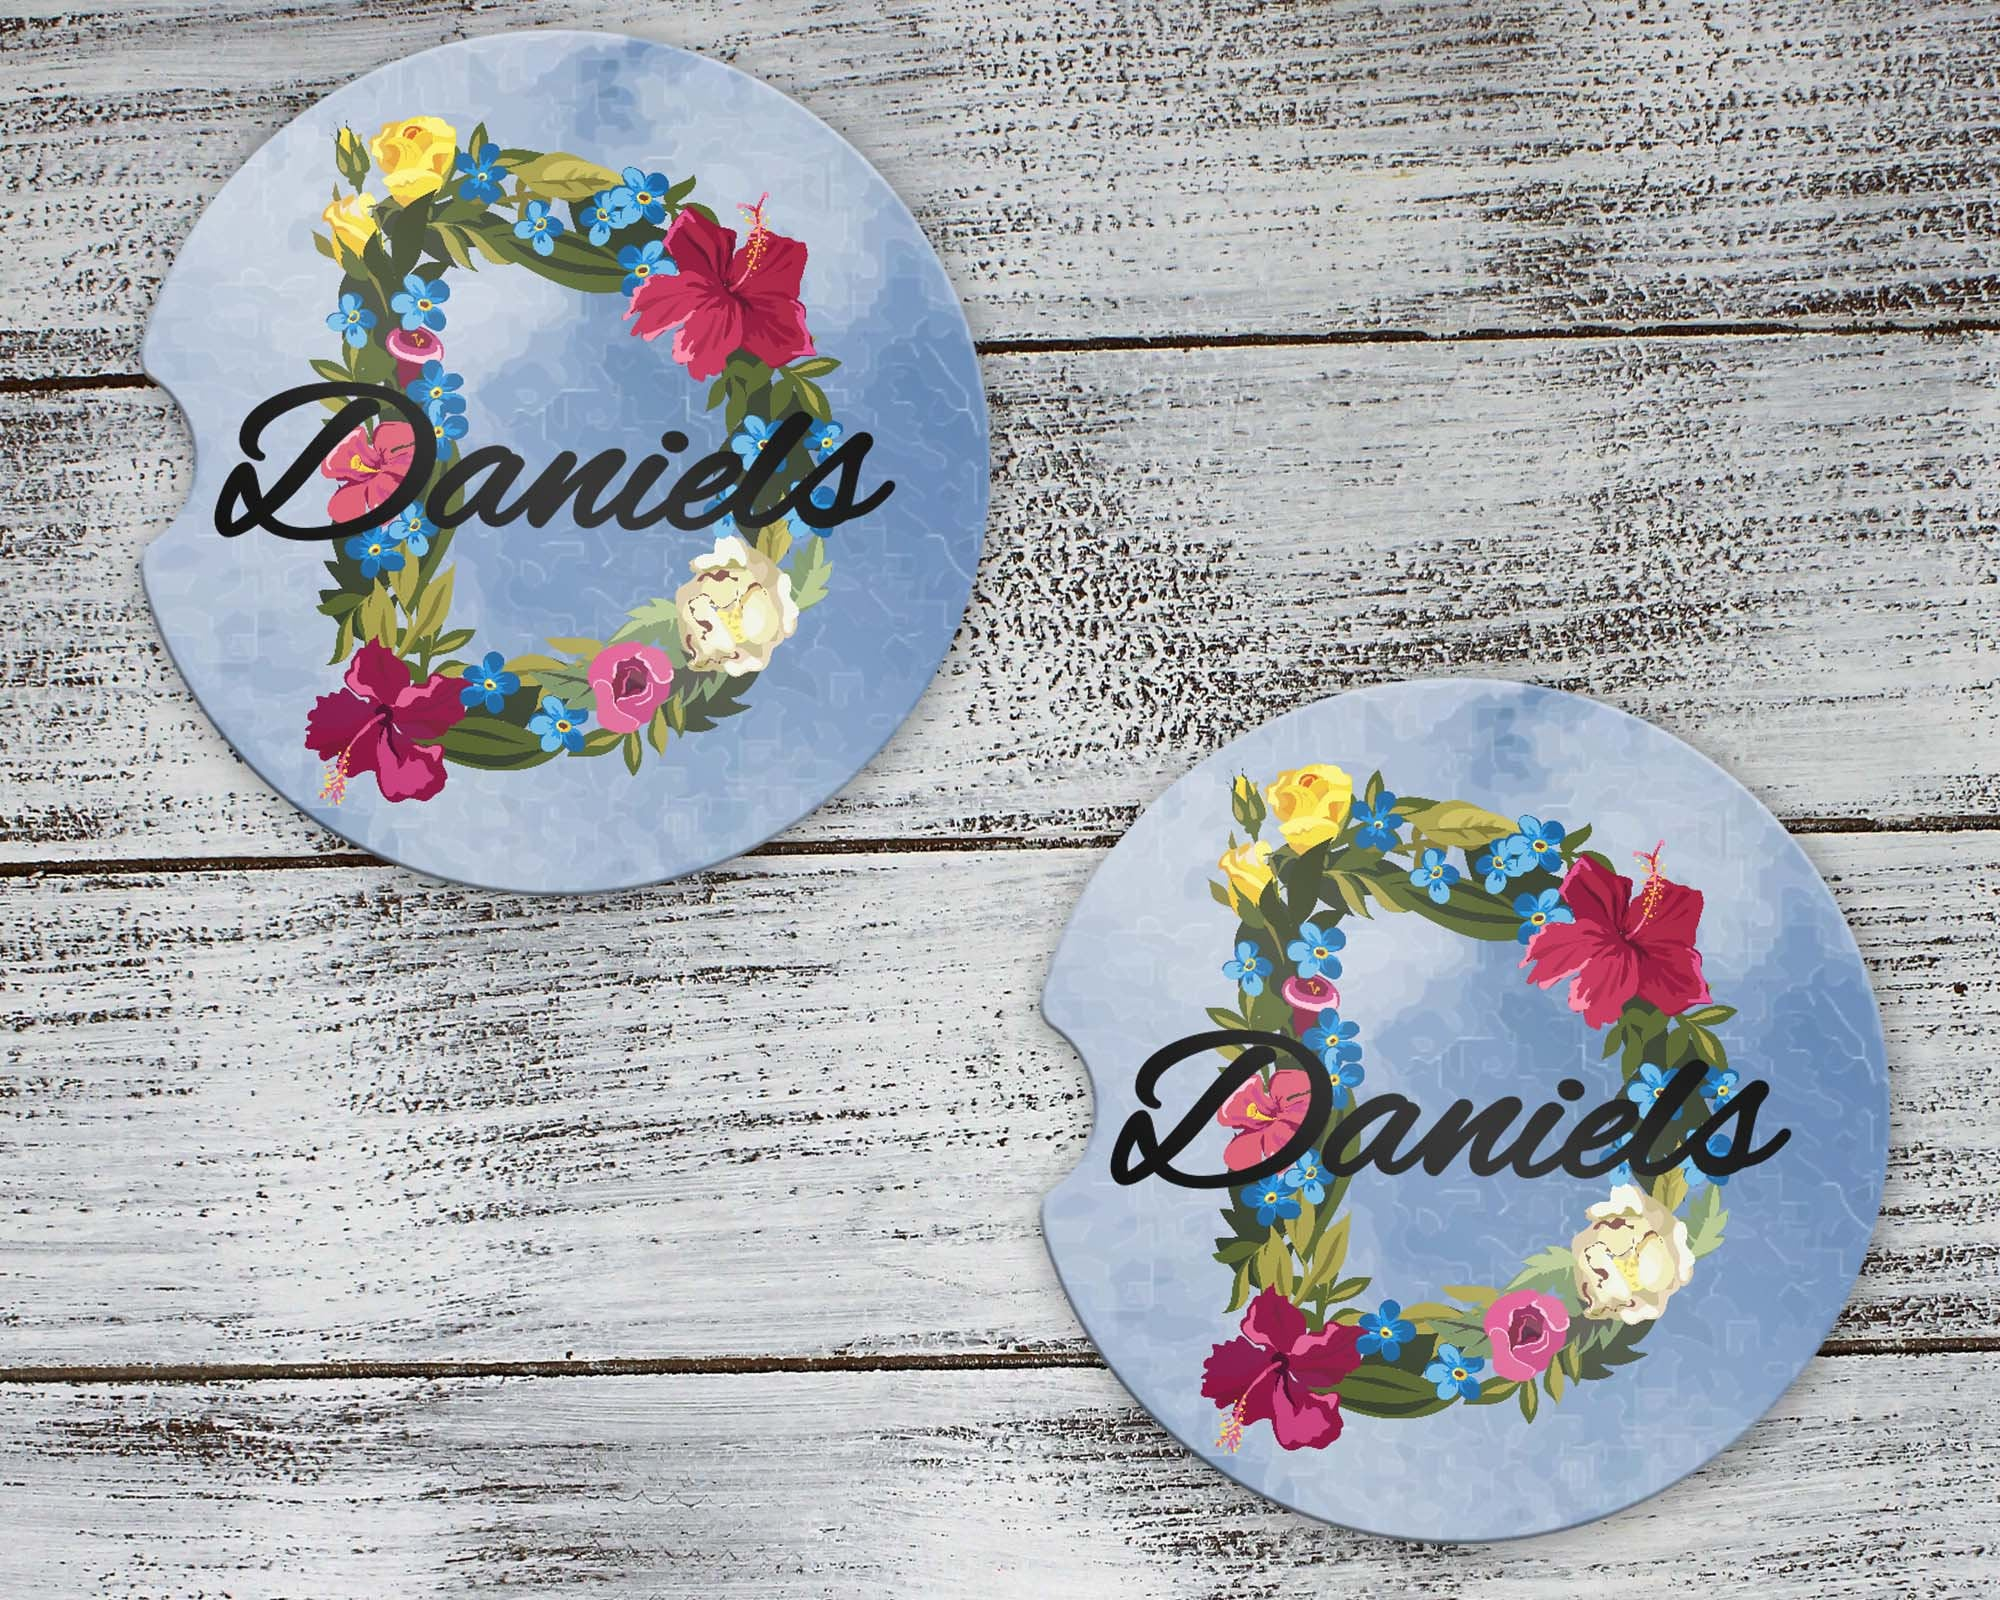 Car Accessories | Personalized Car Coasters | Custom Car Accessories | Floral Wreath | Set of 2 | This and That Solutions | Personalized Gifts | Custom Home Décor